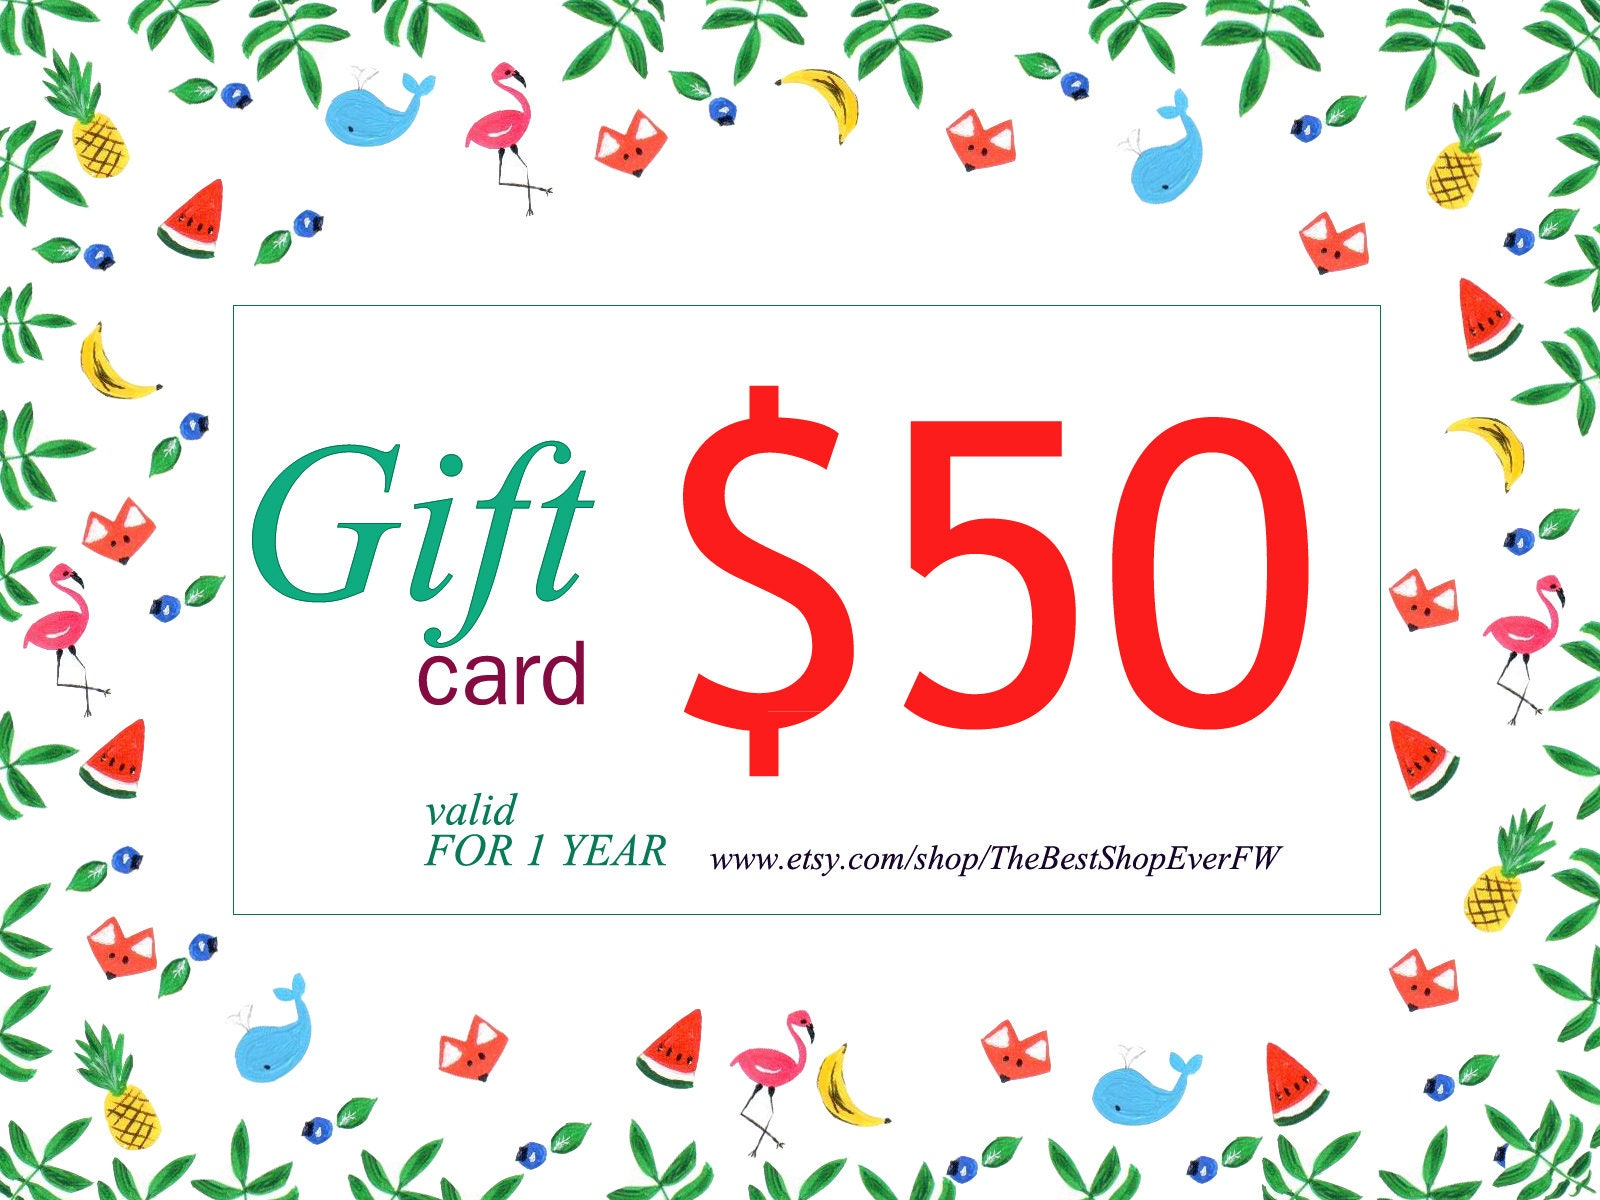 Gift card 50 Last minute gift Personal gift card Christmas | Etsy